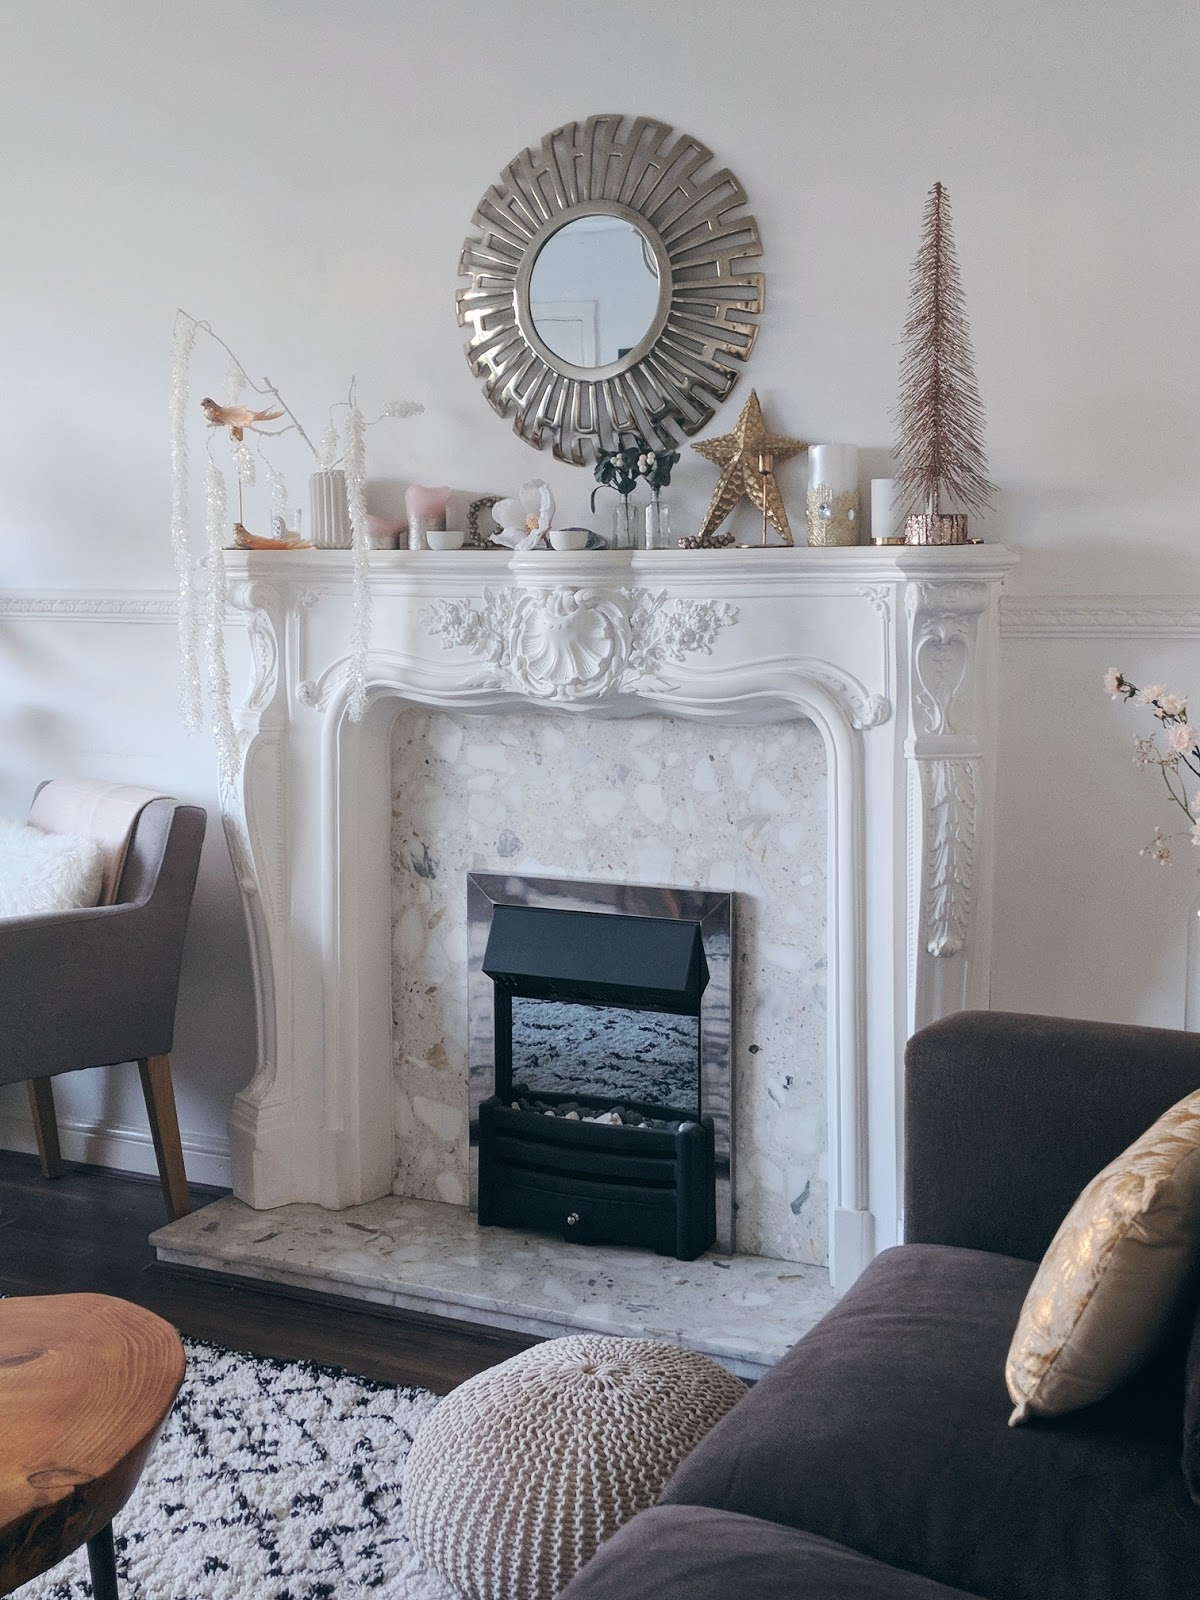 How to style a christmas mantelpiece